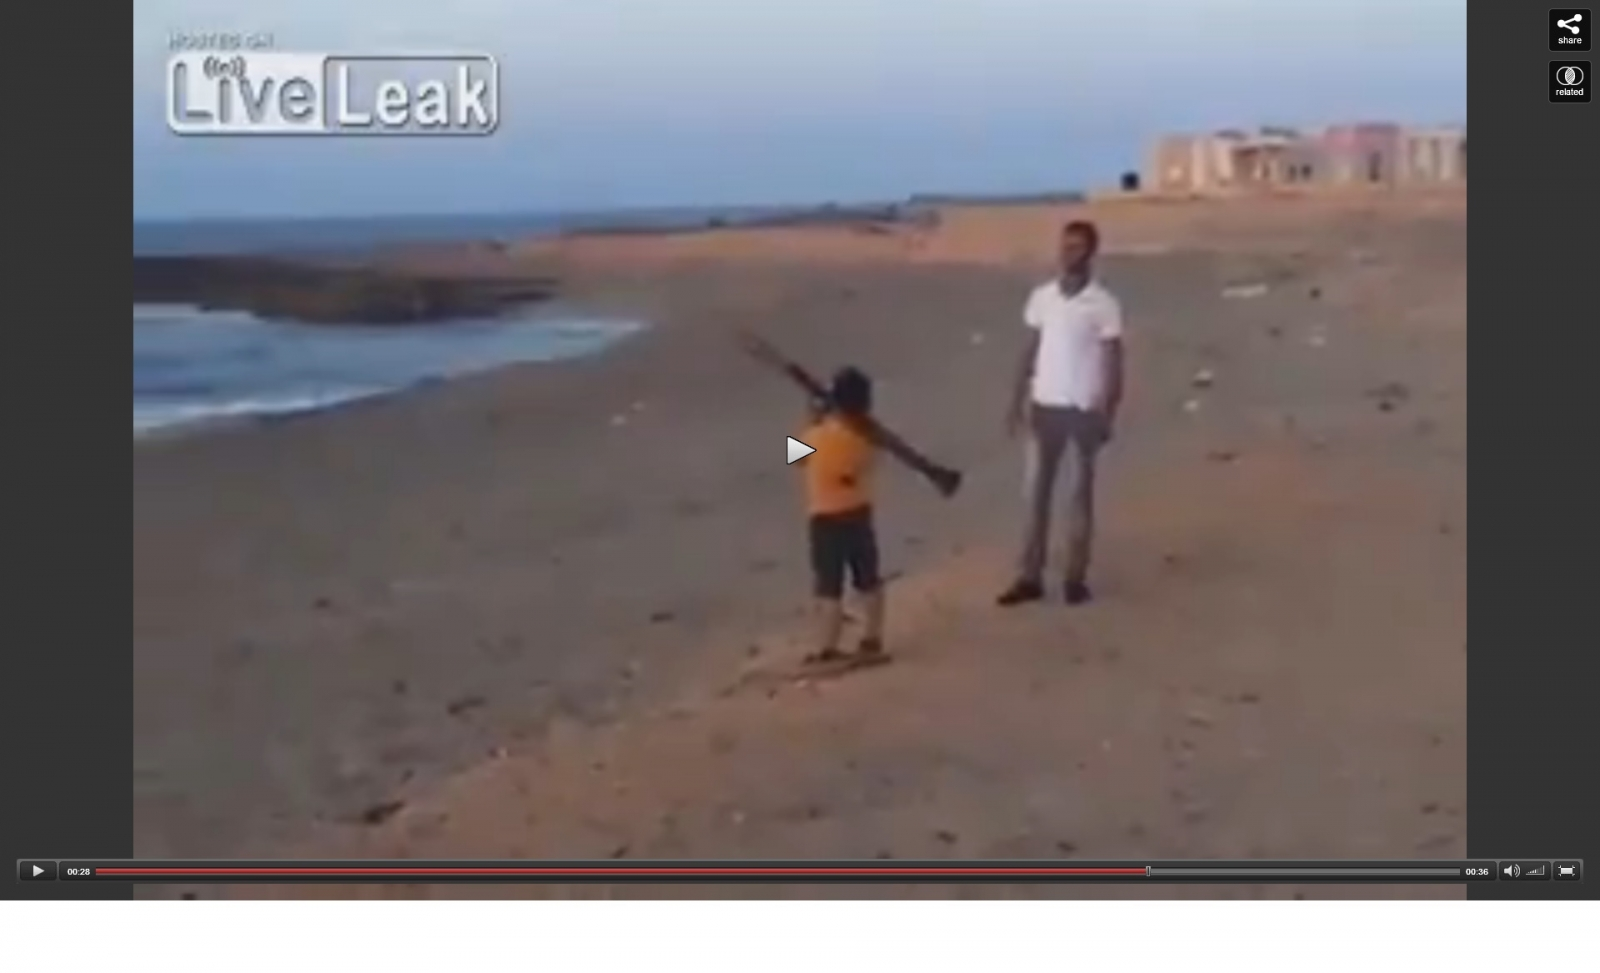 Still from the footage, showing a boy firing an RPG on a Libyan beach.